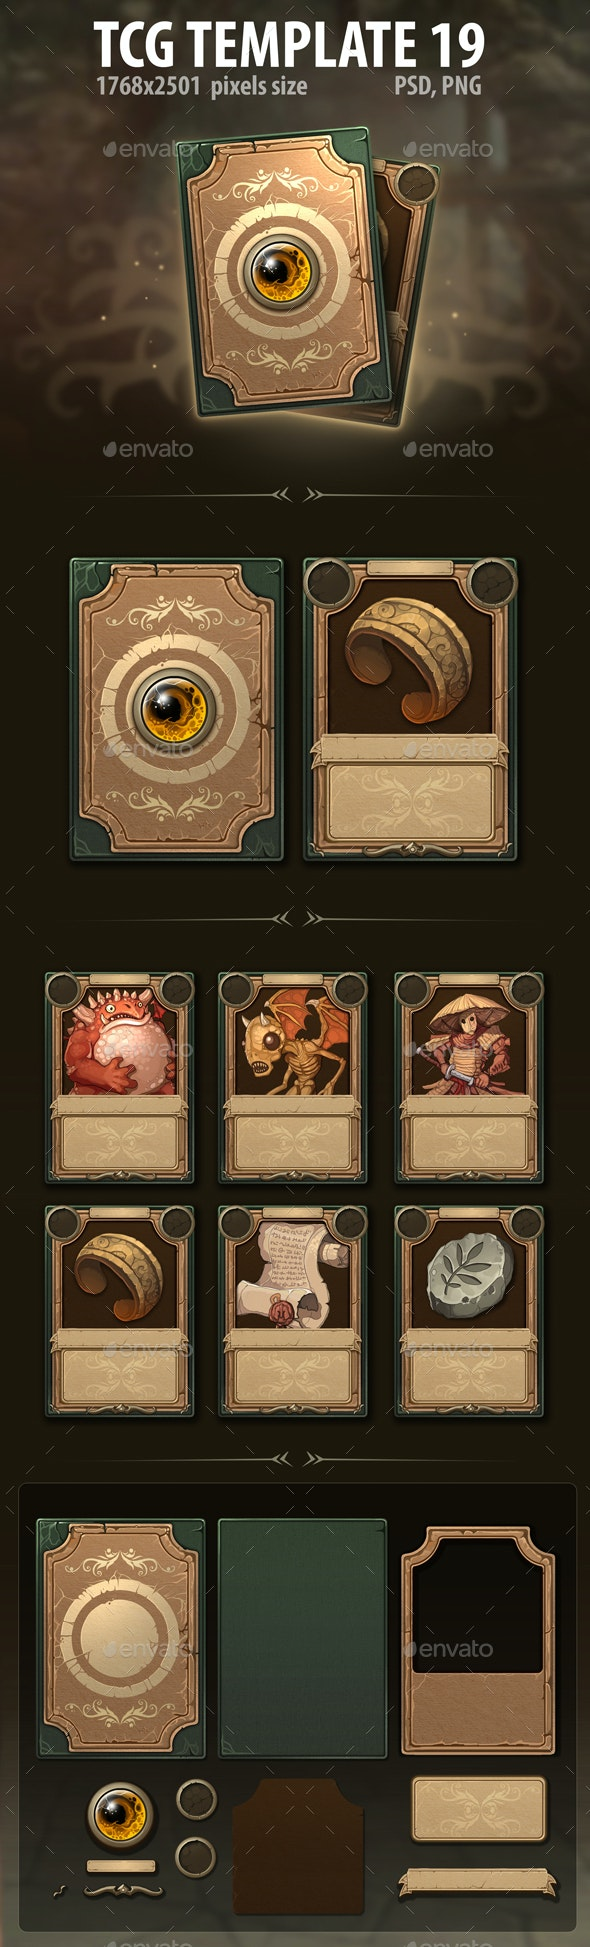 TCG Template 19 - Miscellaneous Game Assets